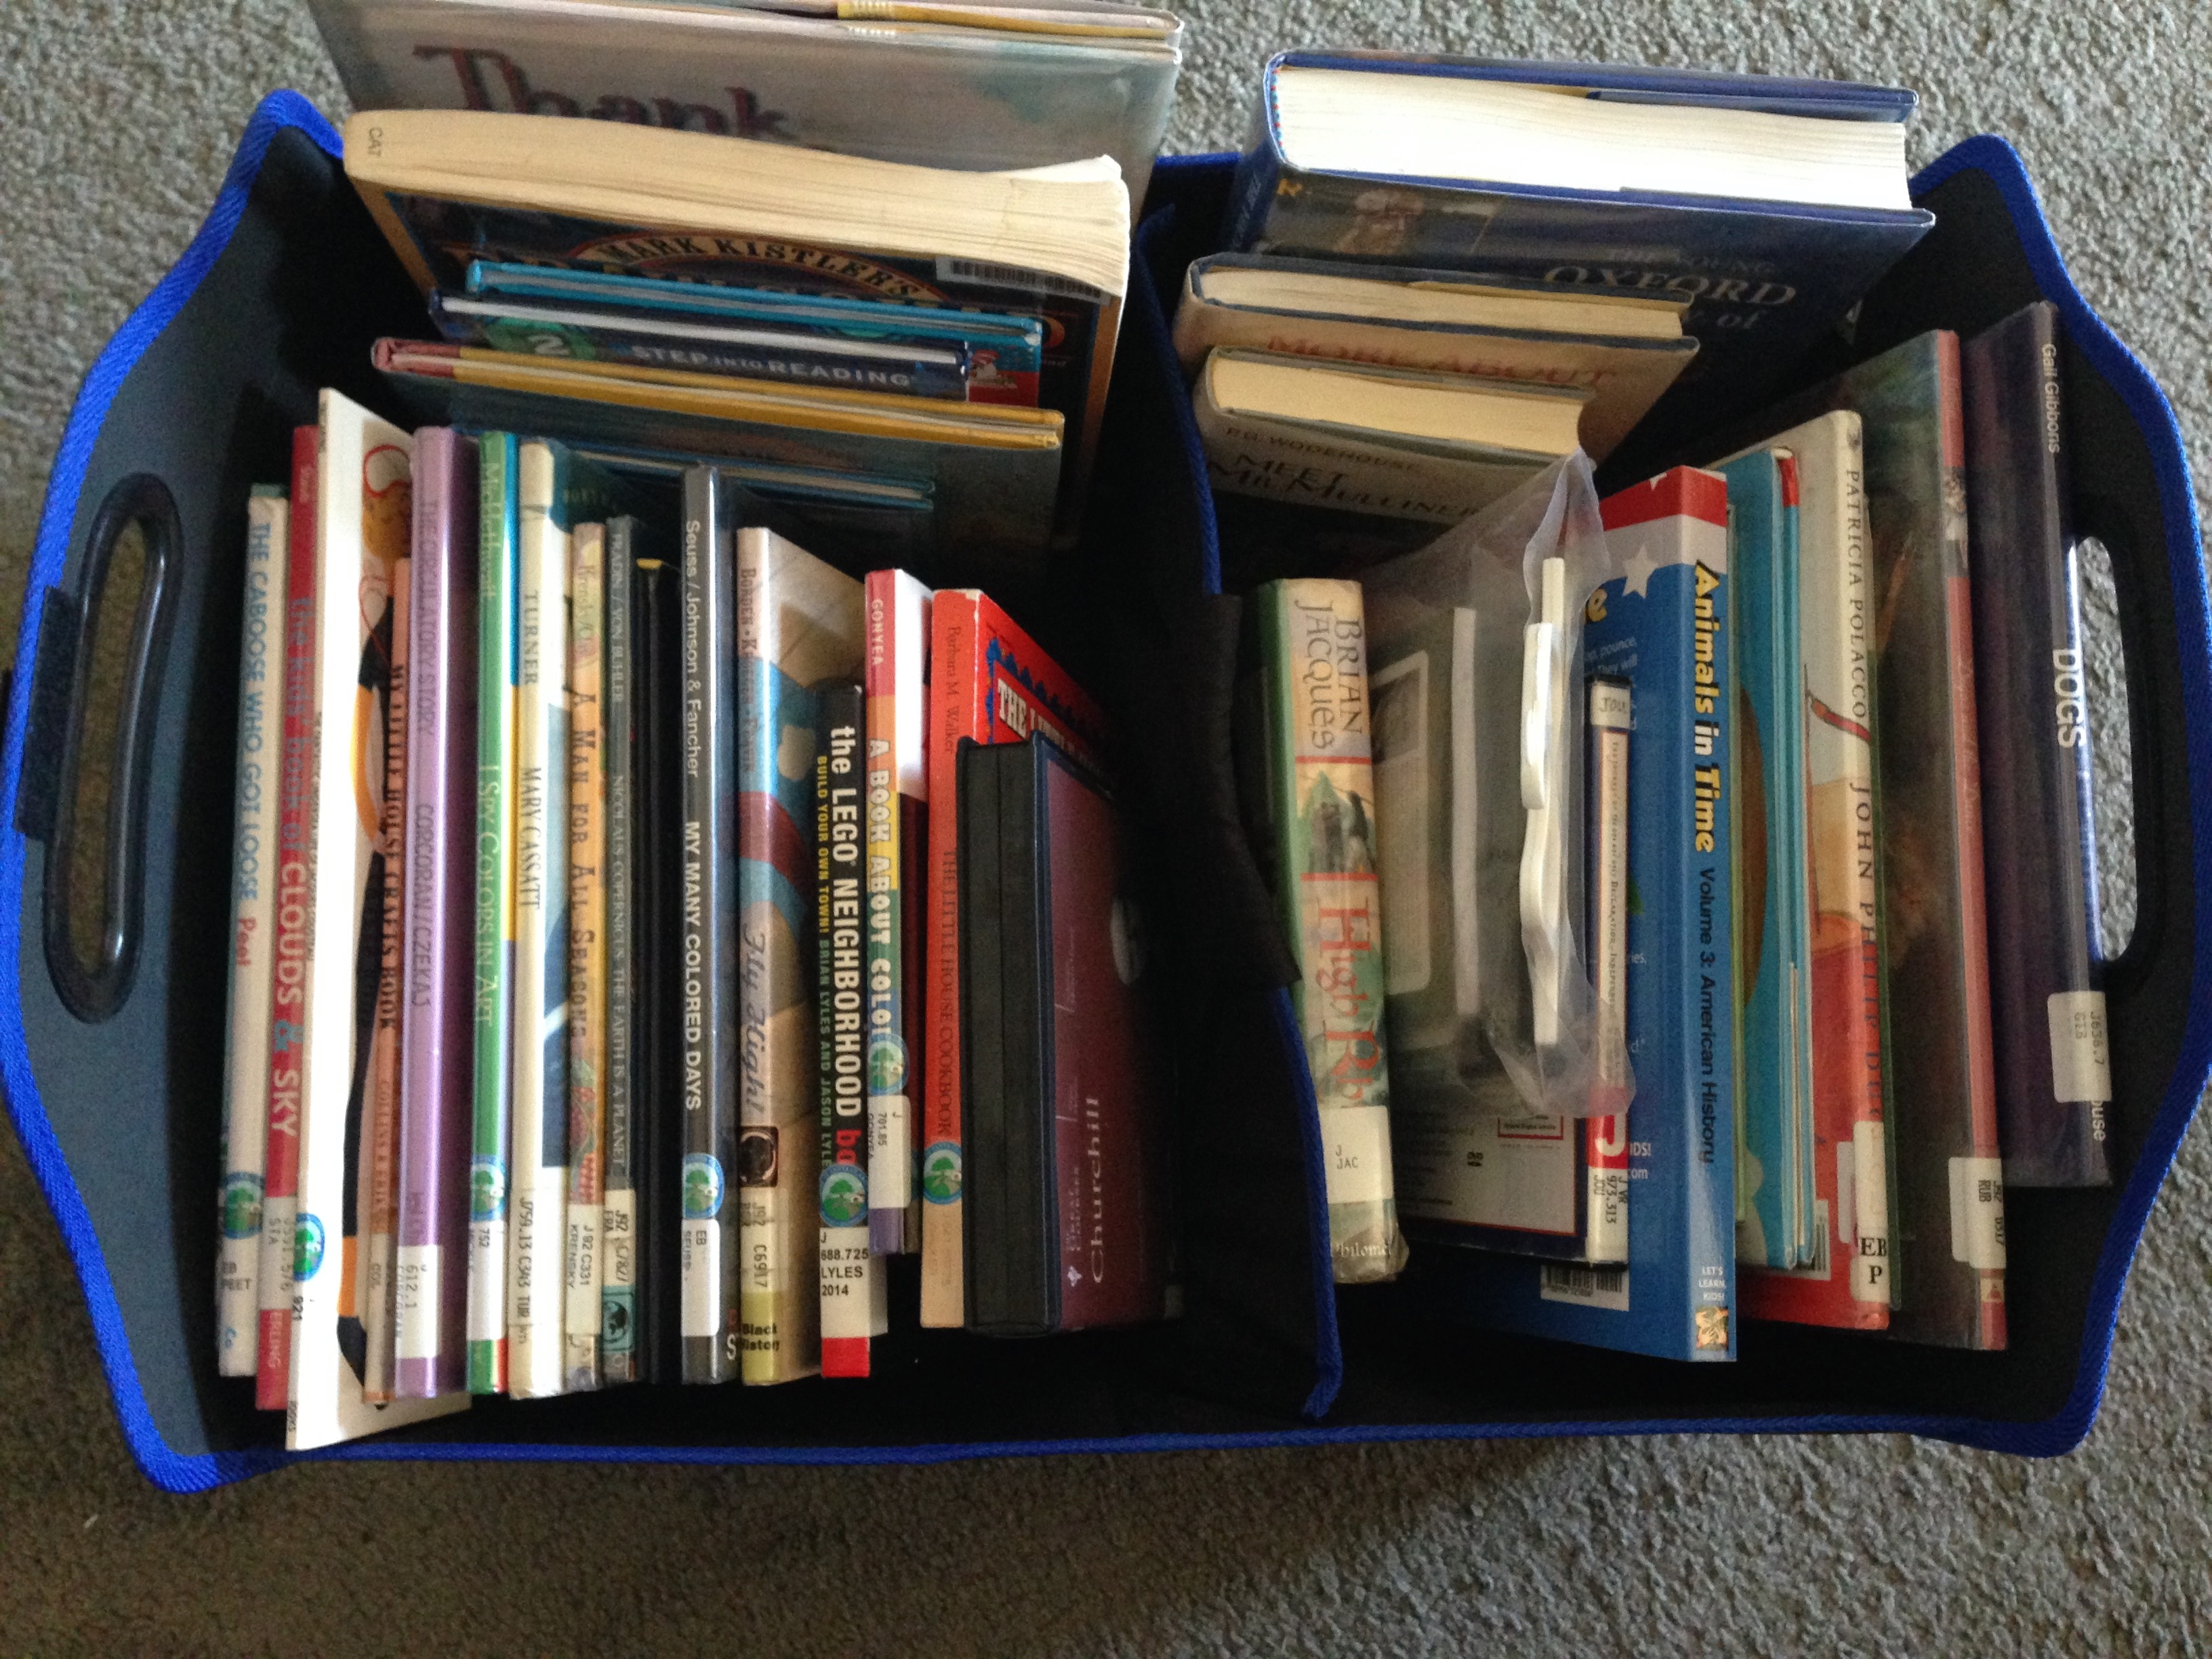 Keeping library books organized